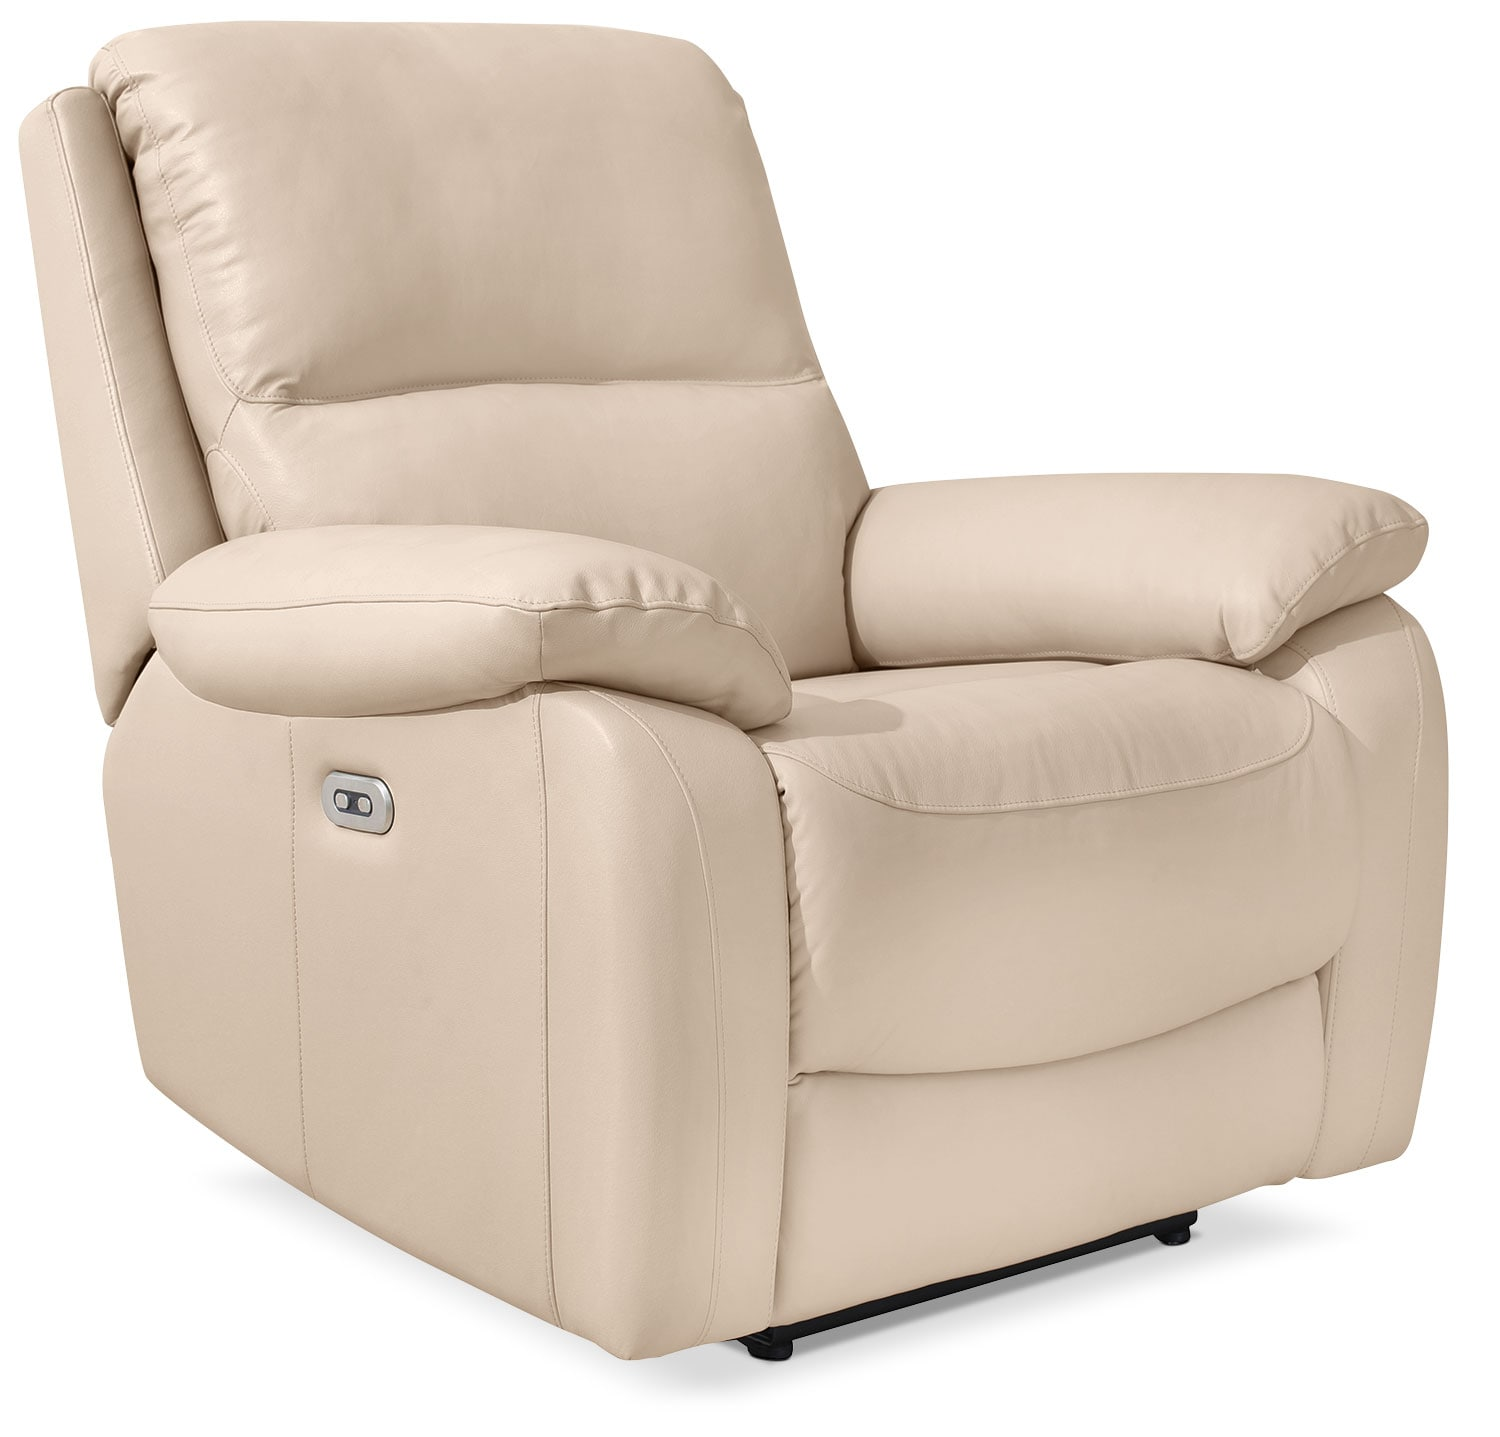 Grove Genuine Leather Power Reclining Chair with Adjustable Headrest – Cream